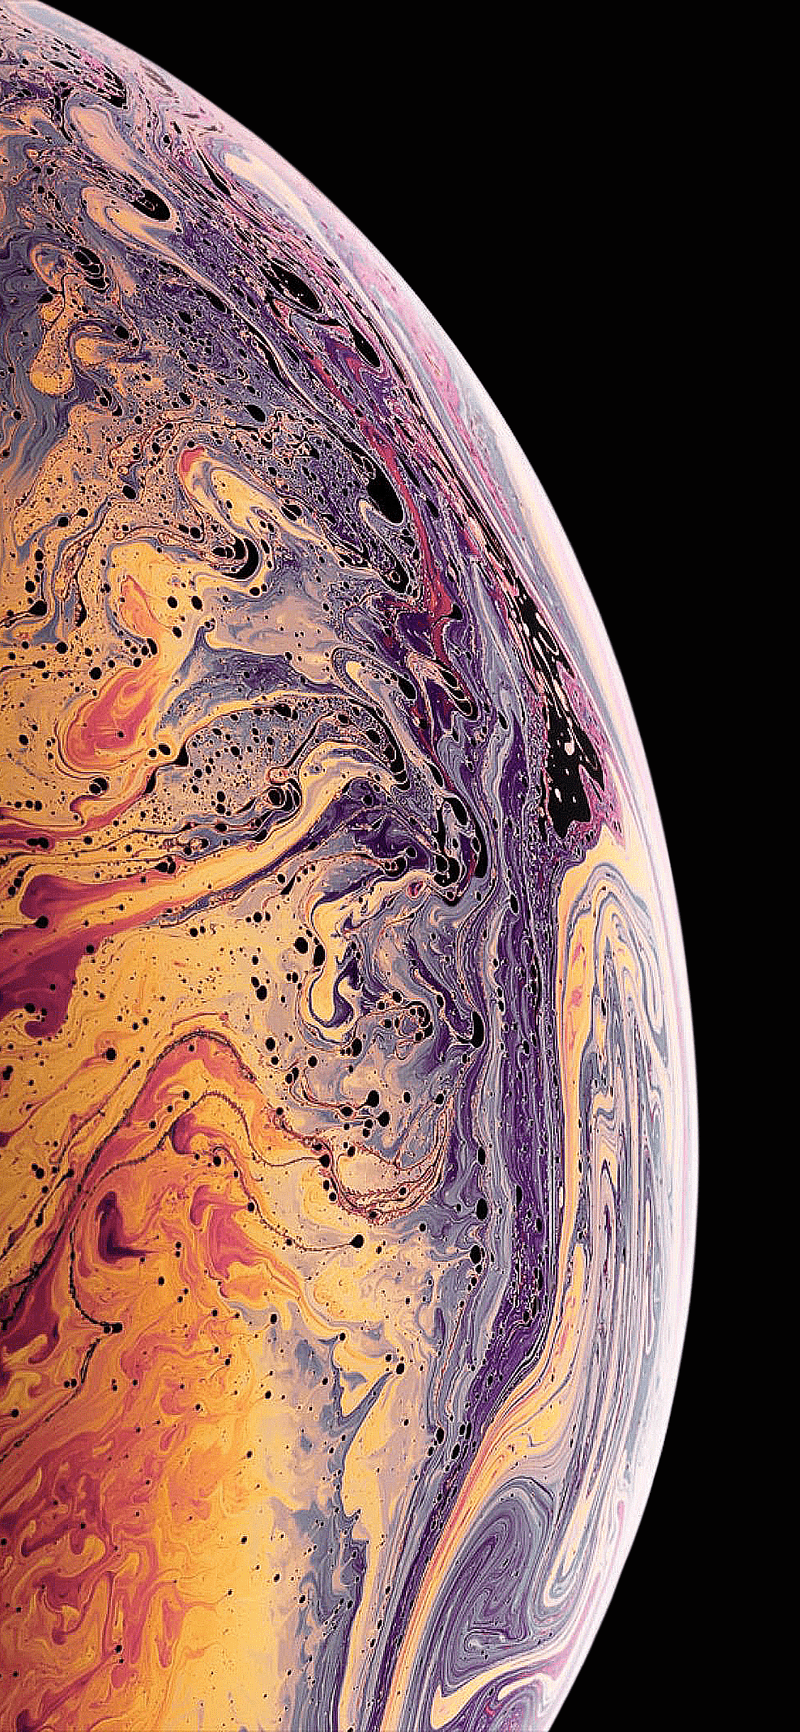 download iphone xs max wallpaper